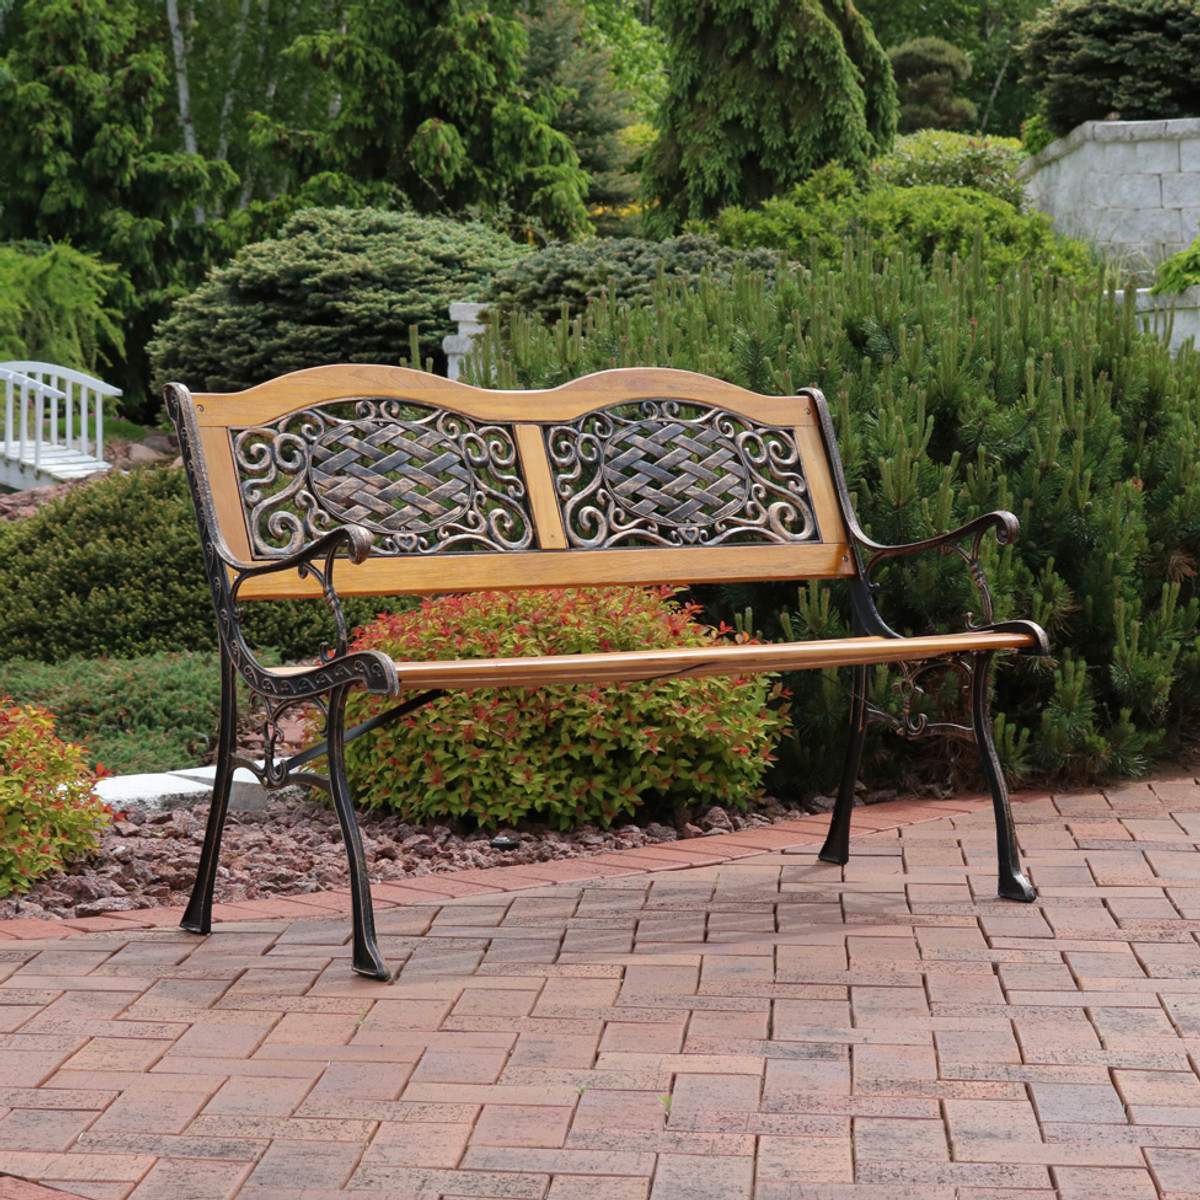 Sunnydaze 2 Person Outdoor Bench, Cast Aluminum And Wood With Ivy  Crossweave Design, 49 Inch